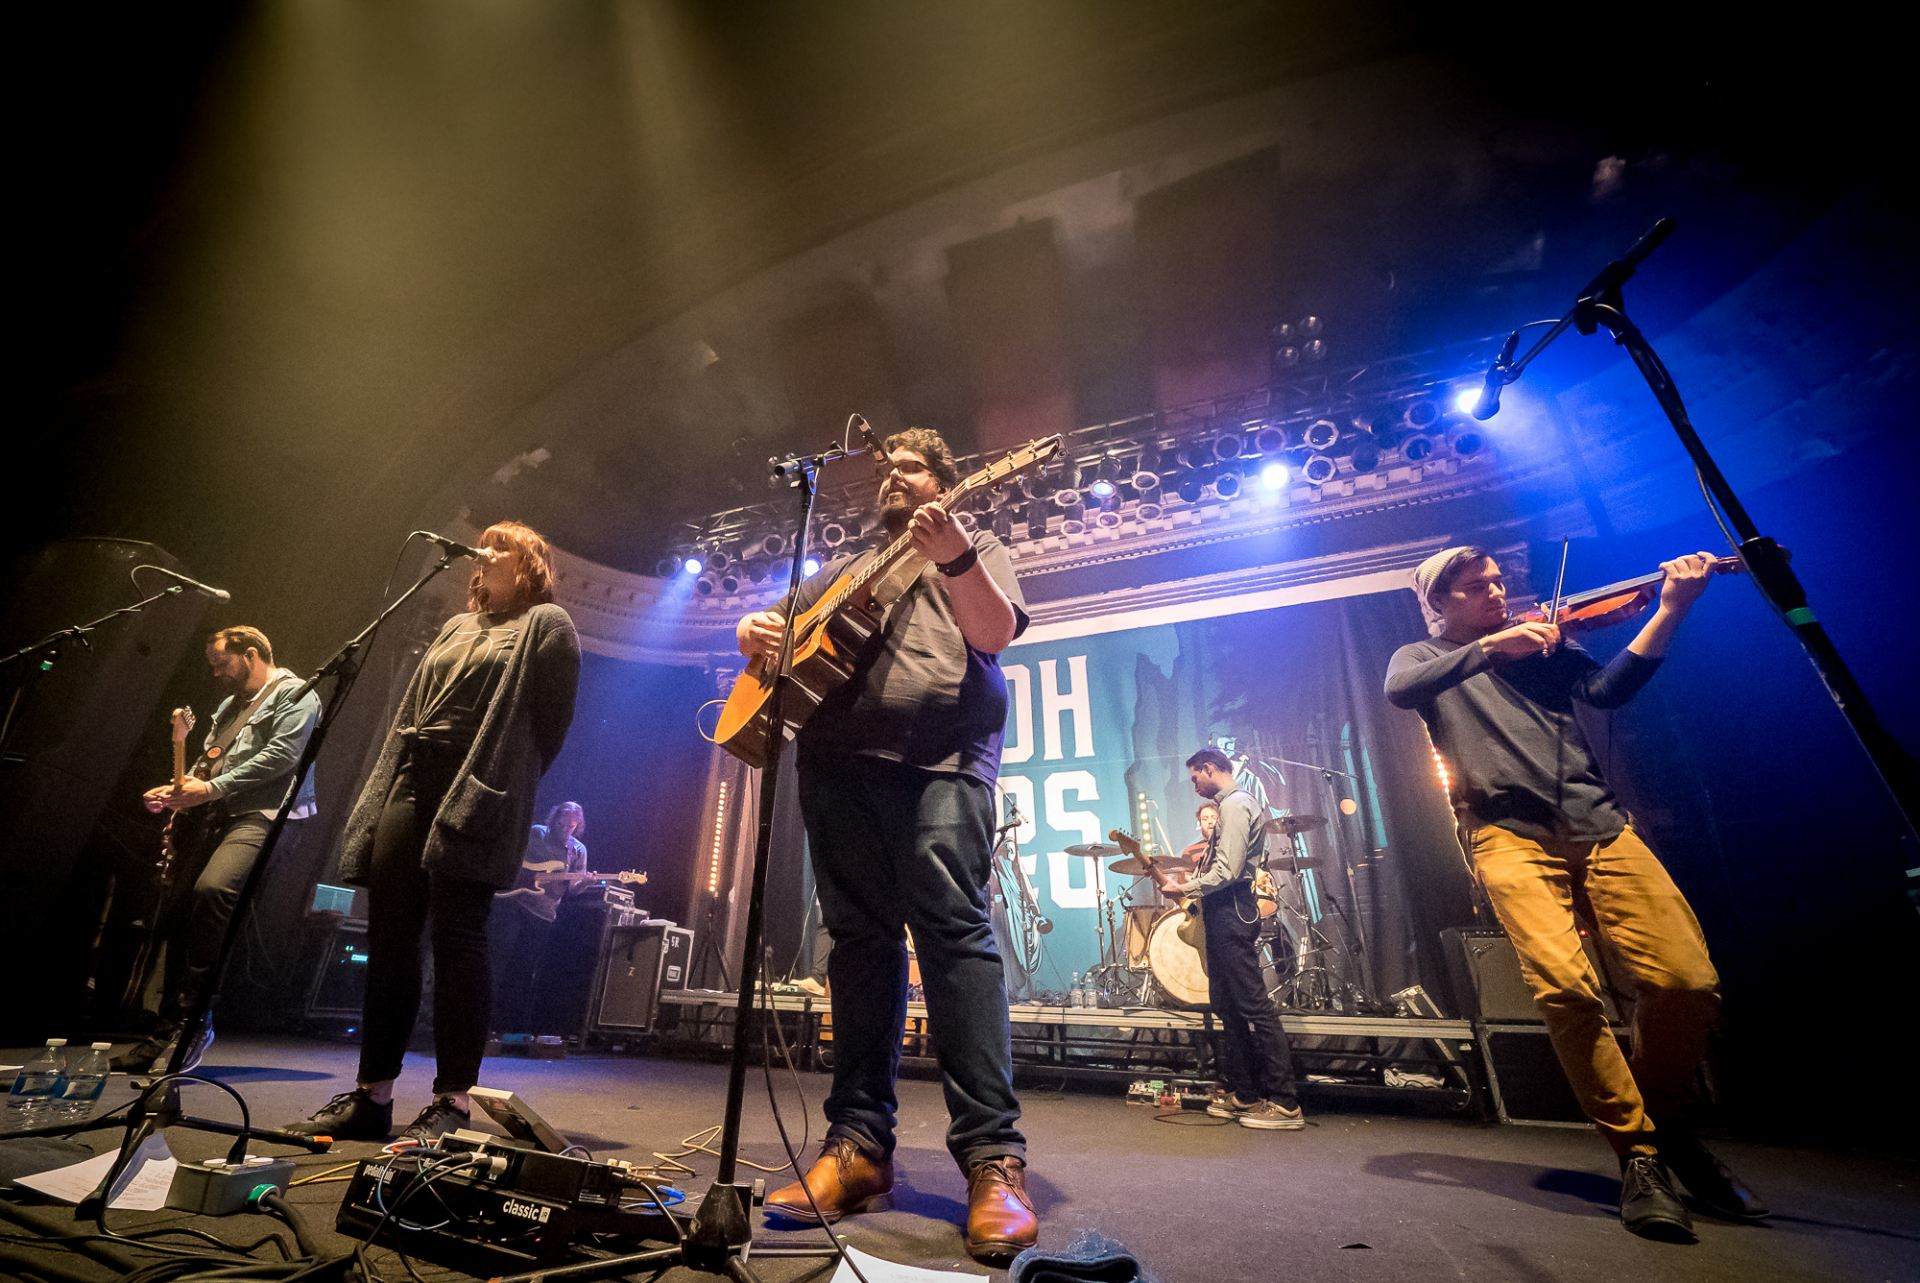 Concert review: The Oh Hellos bring high-energy folk and